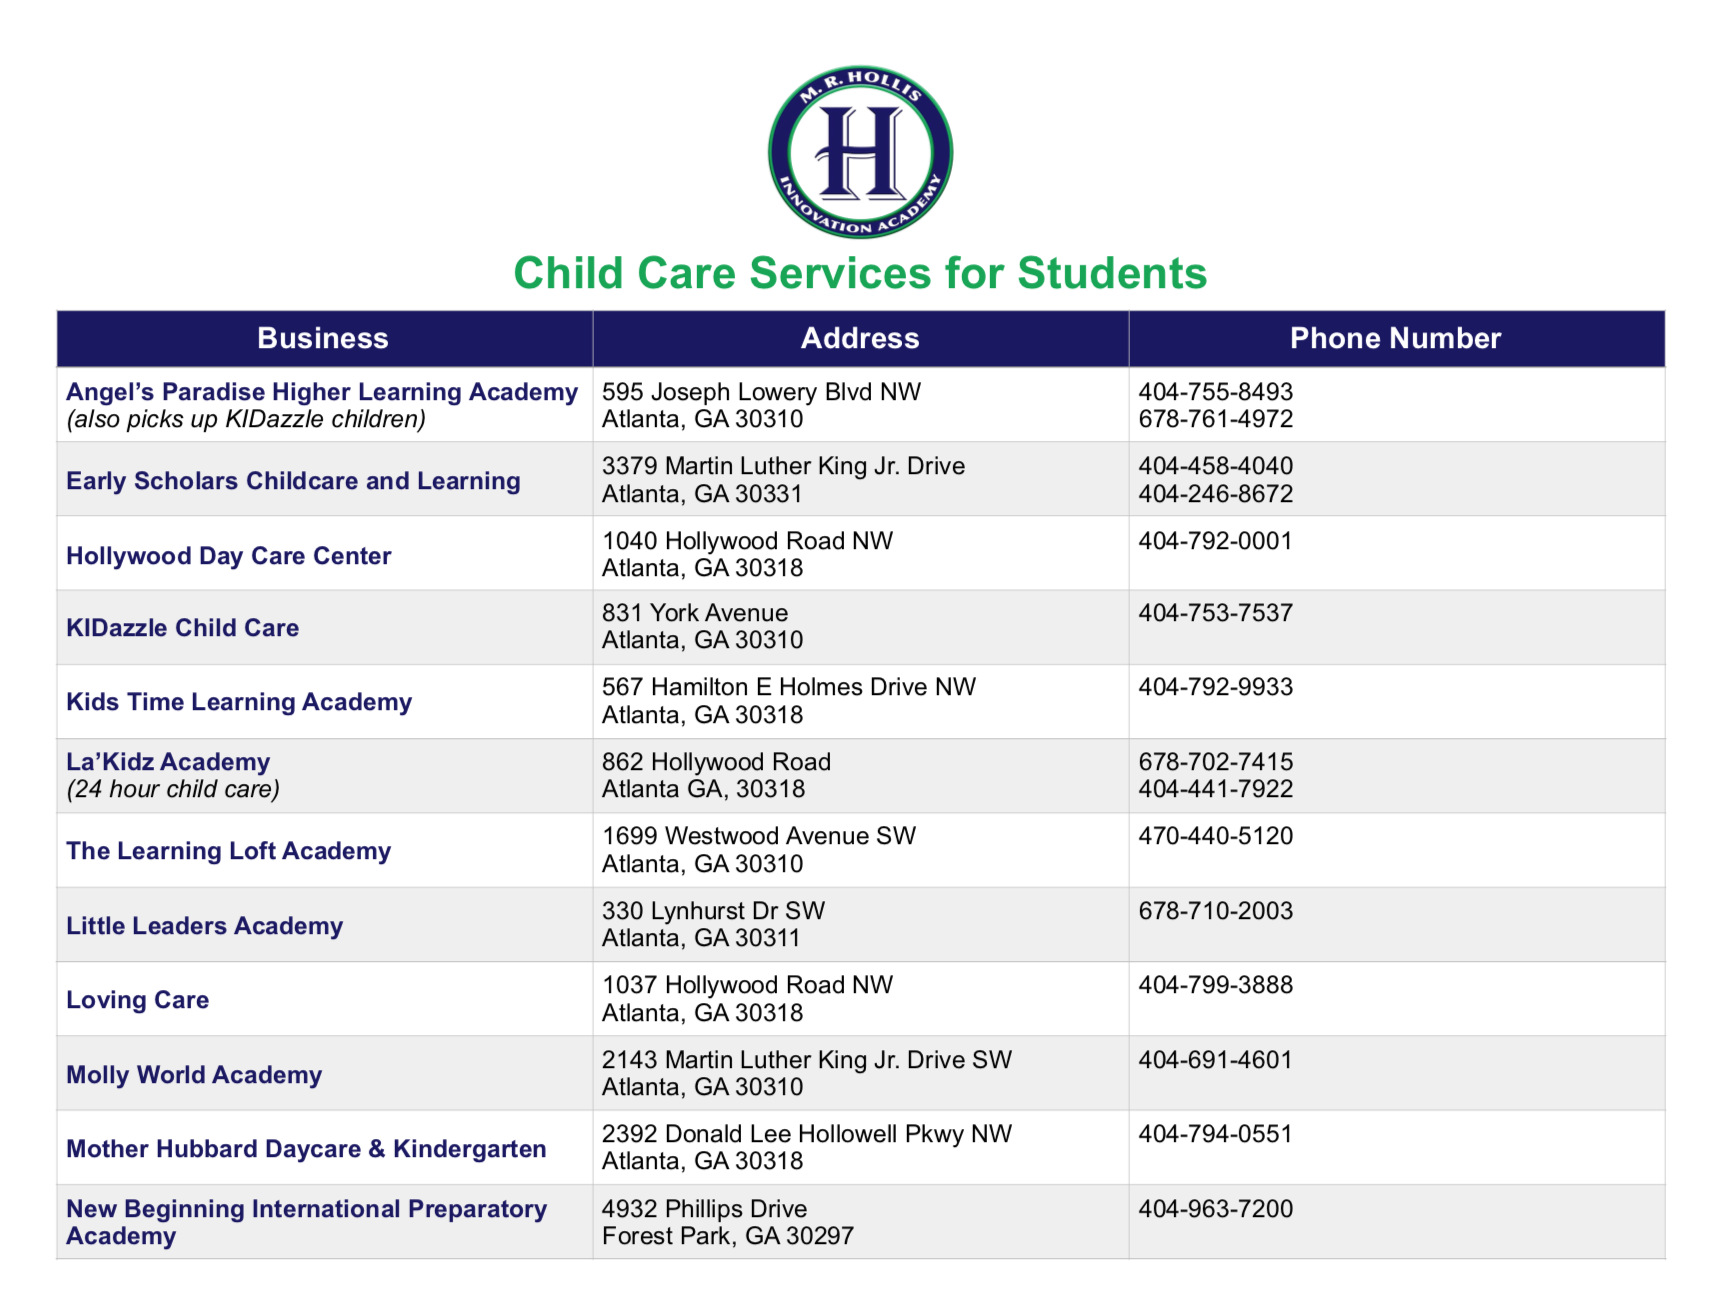 image for list of child care services